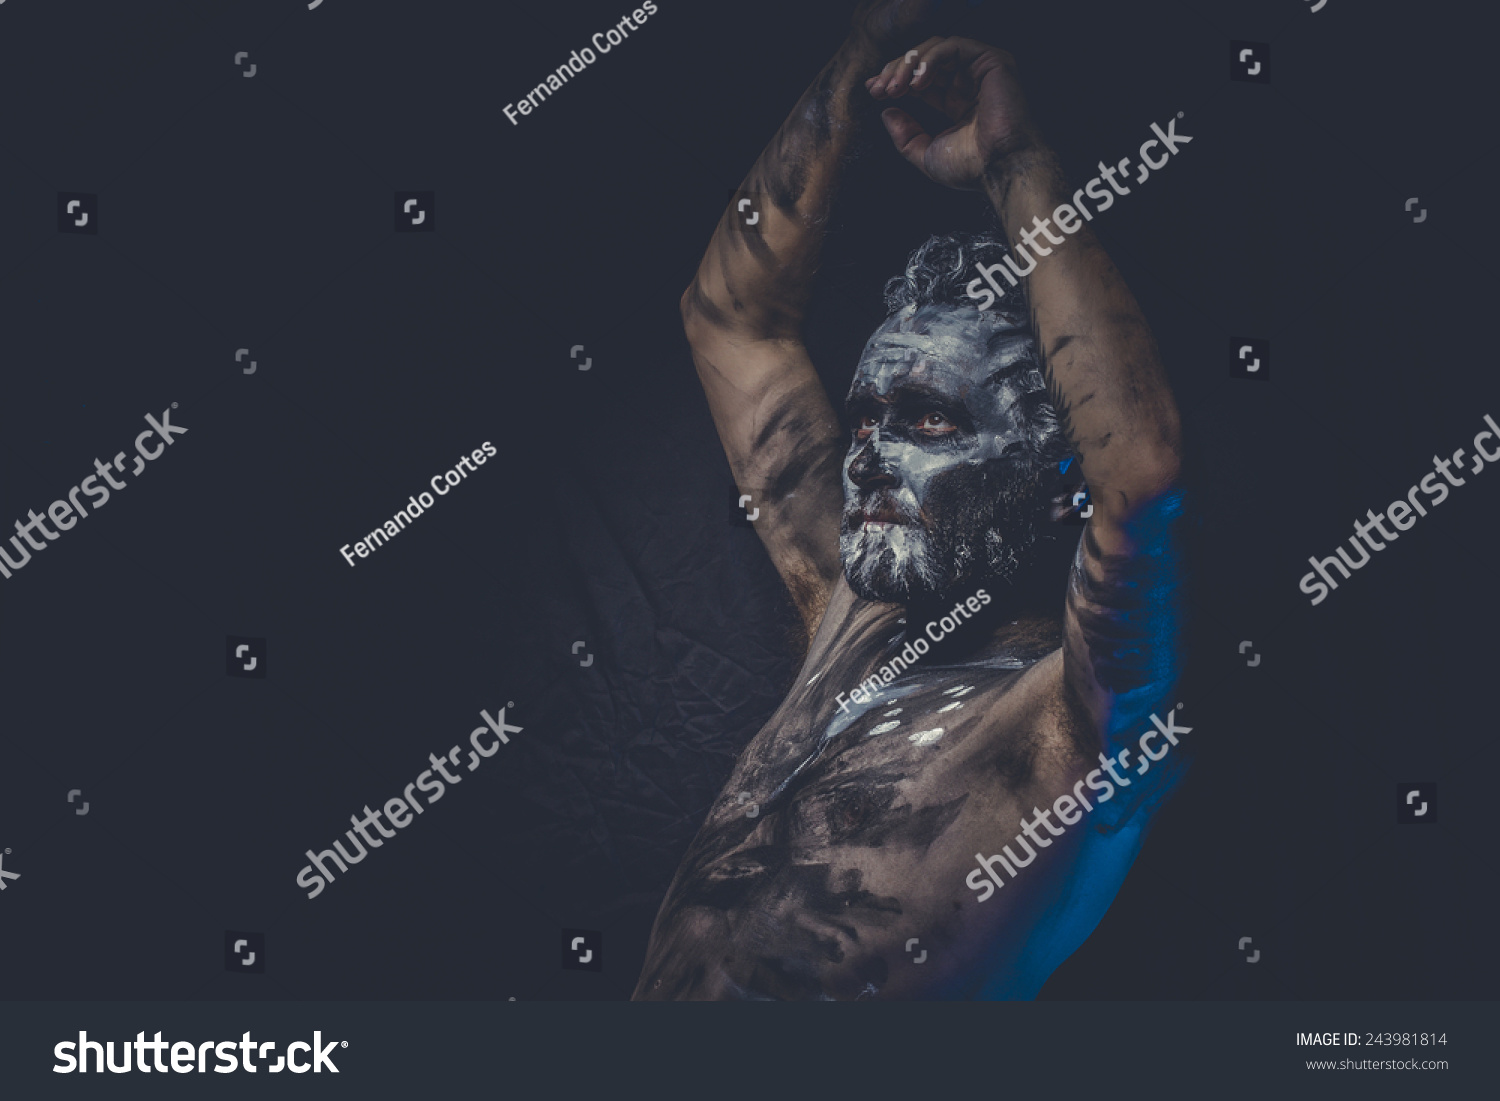 Man Covered In Mud Stock Photos, Images, & Pictures